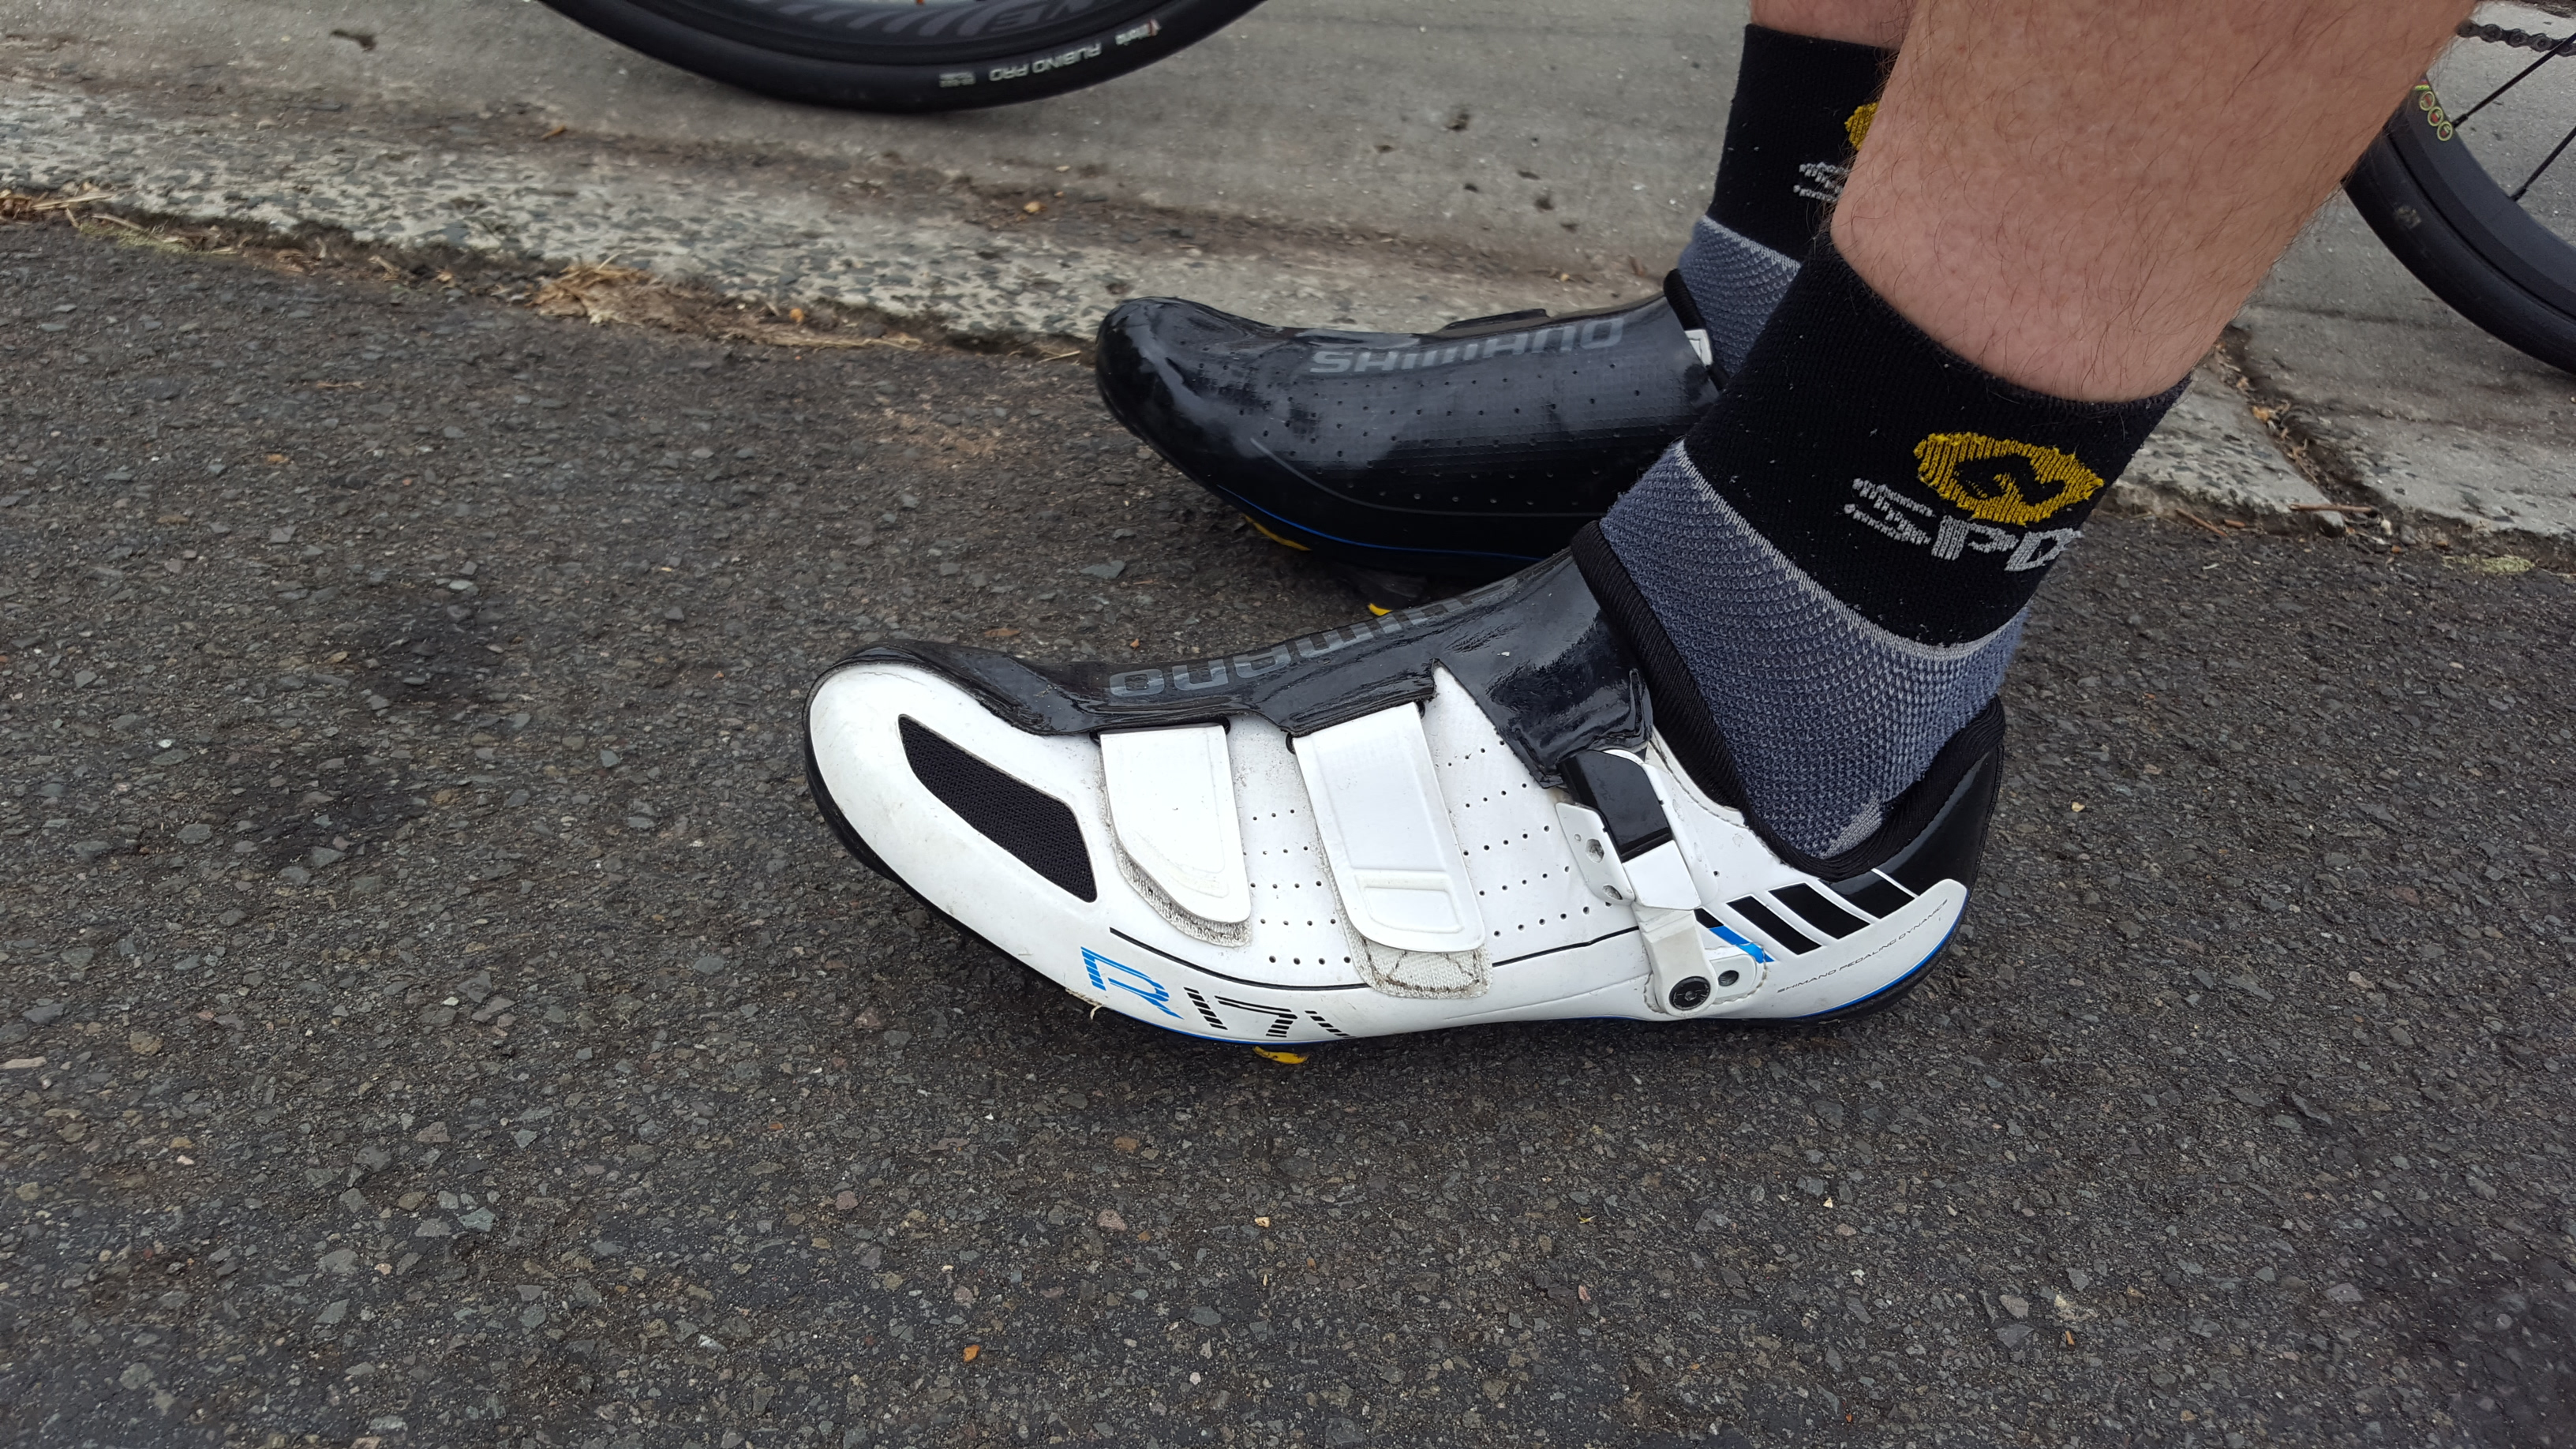 2000km on: Shimano R171 road shoes